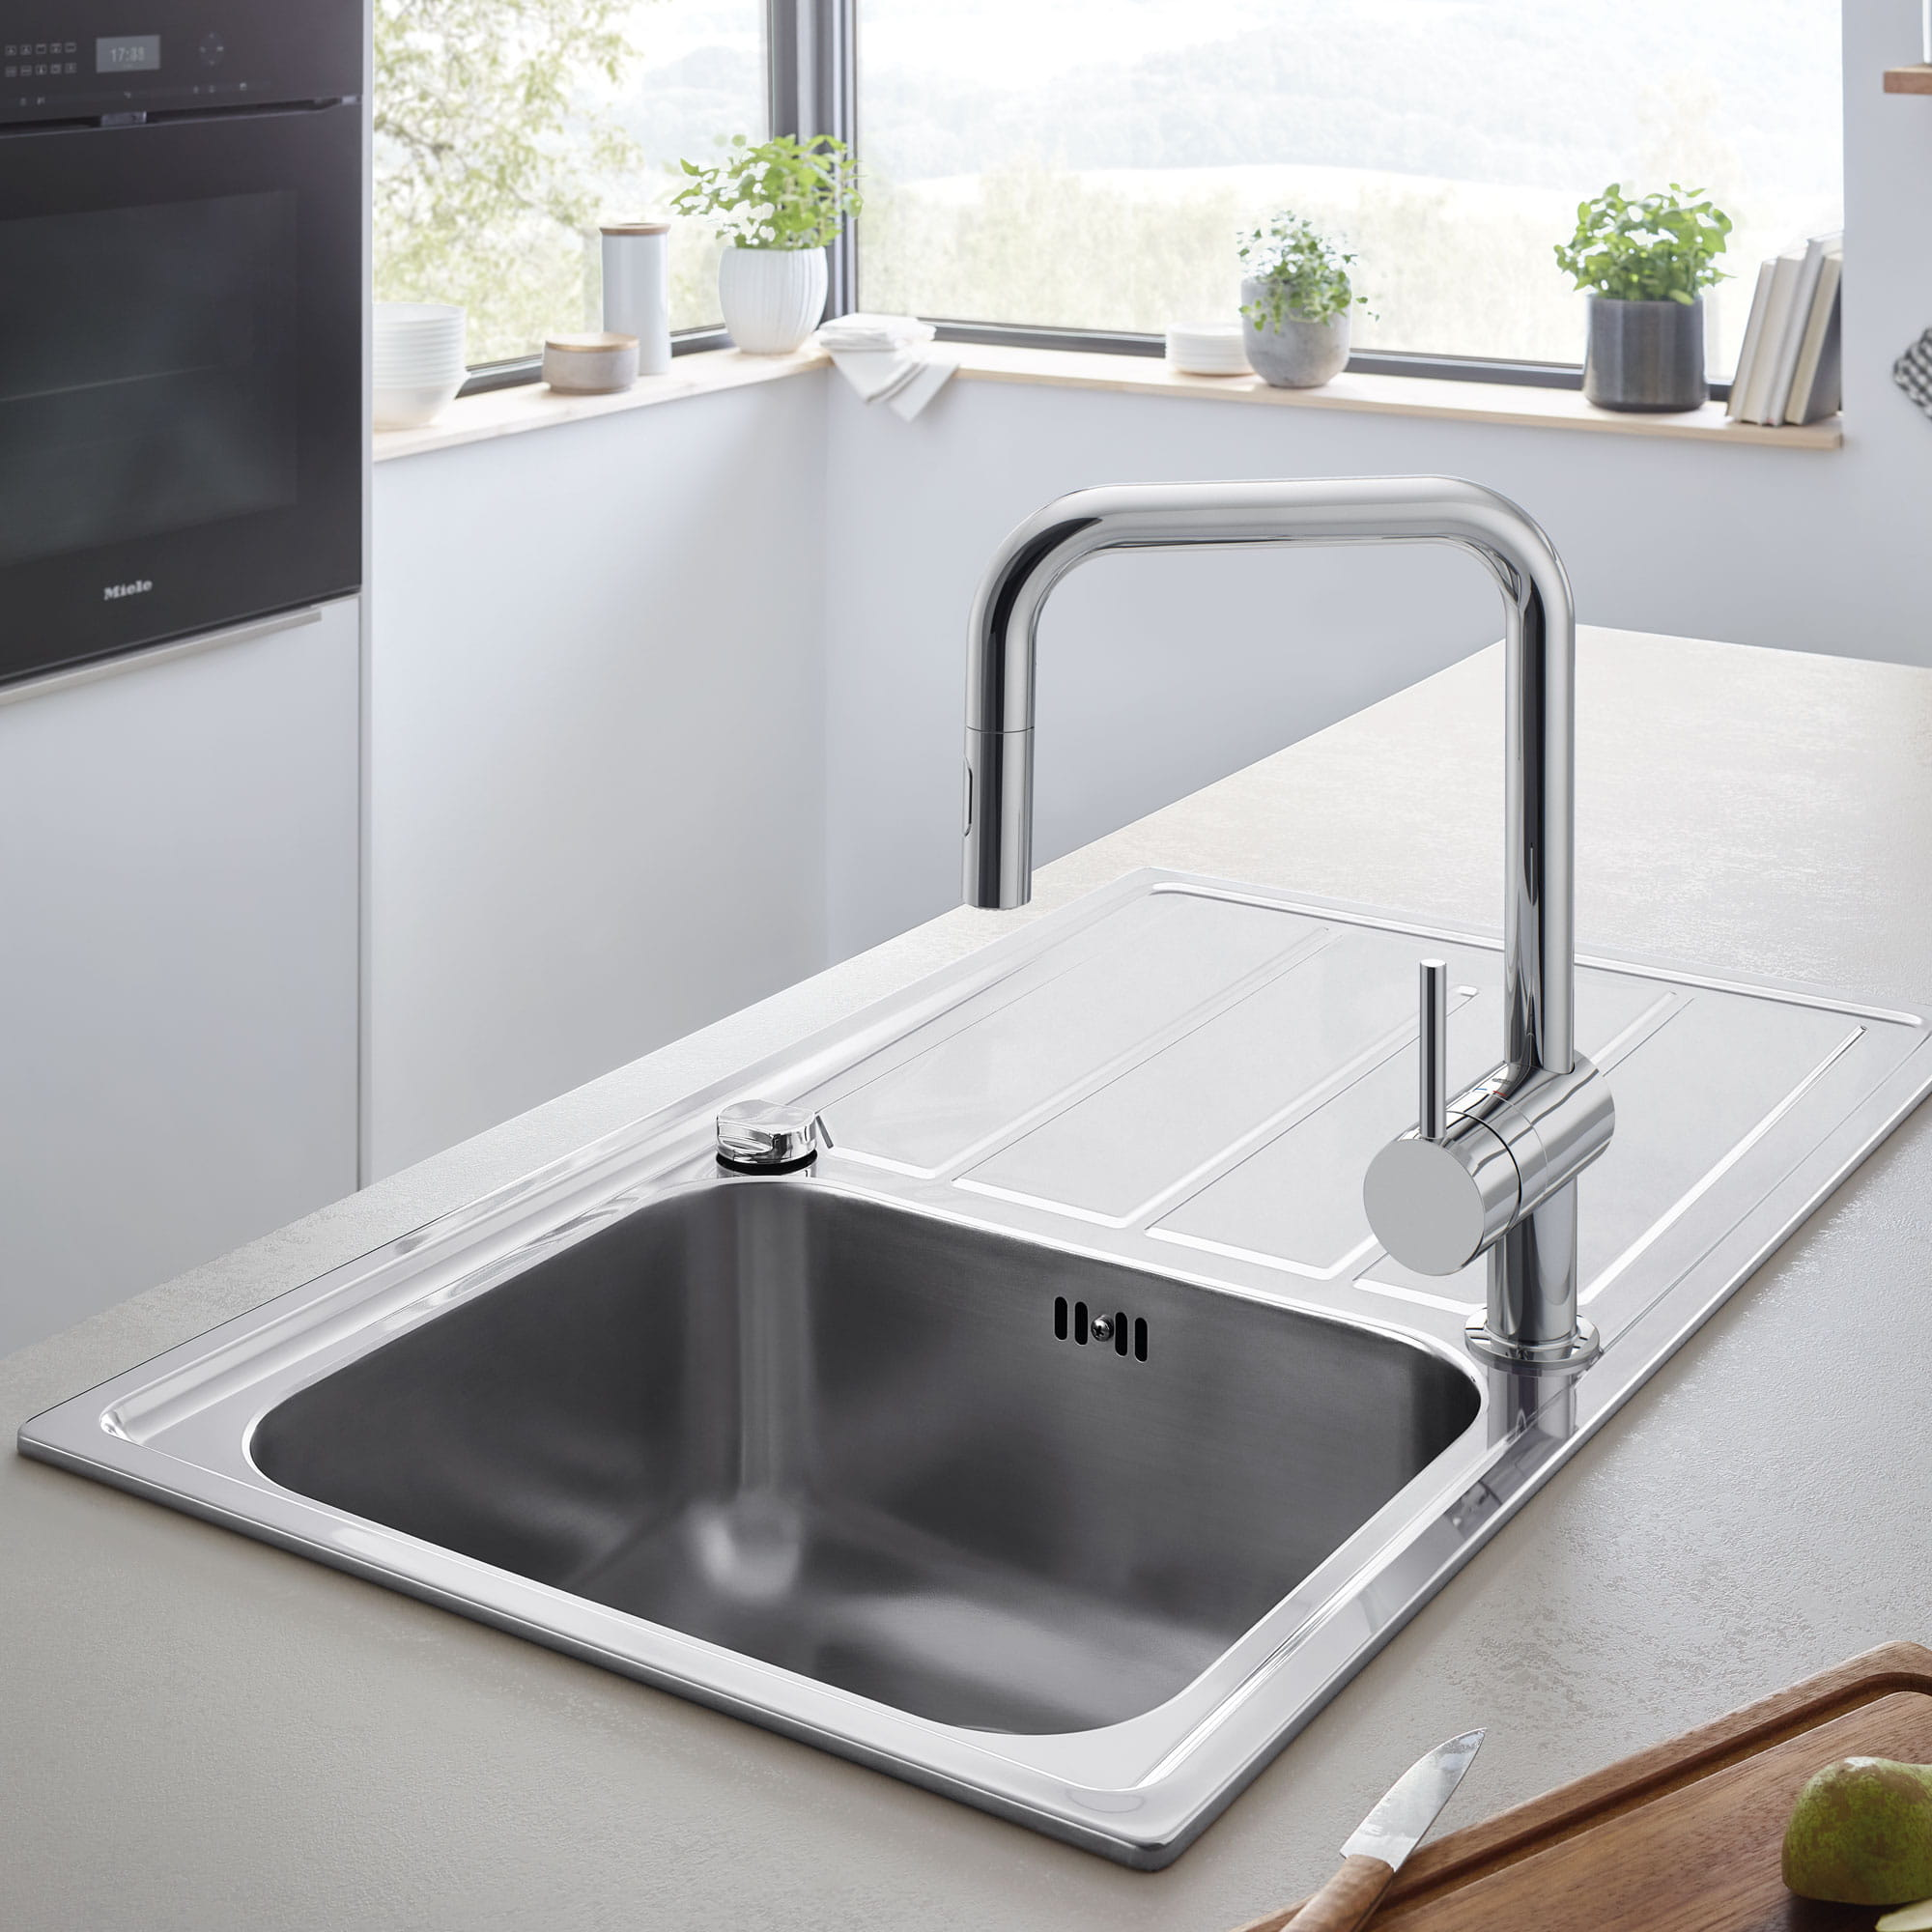 Minta Kitchen Faucet by GROHE in Kitchen Scene with Sink